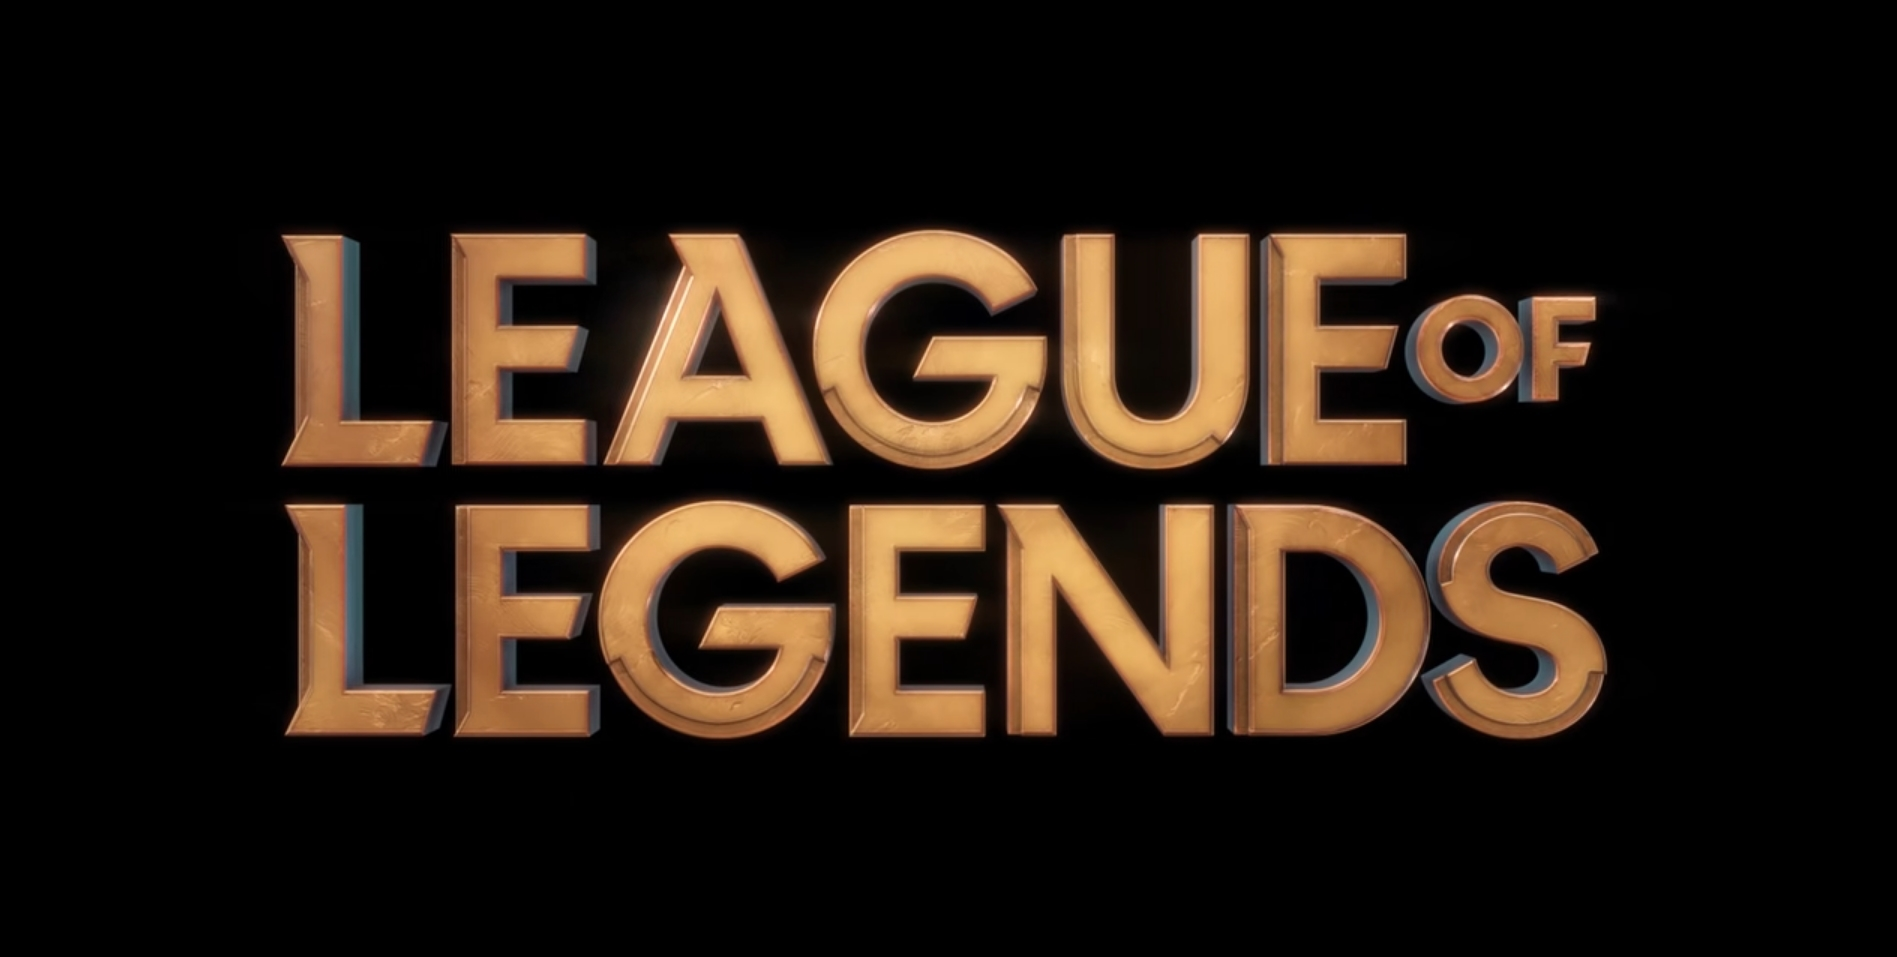 League Of Legends' Latest Patch Brings Nerfs And Changes To A Variety Of Champions, Adding Jungling Viability